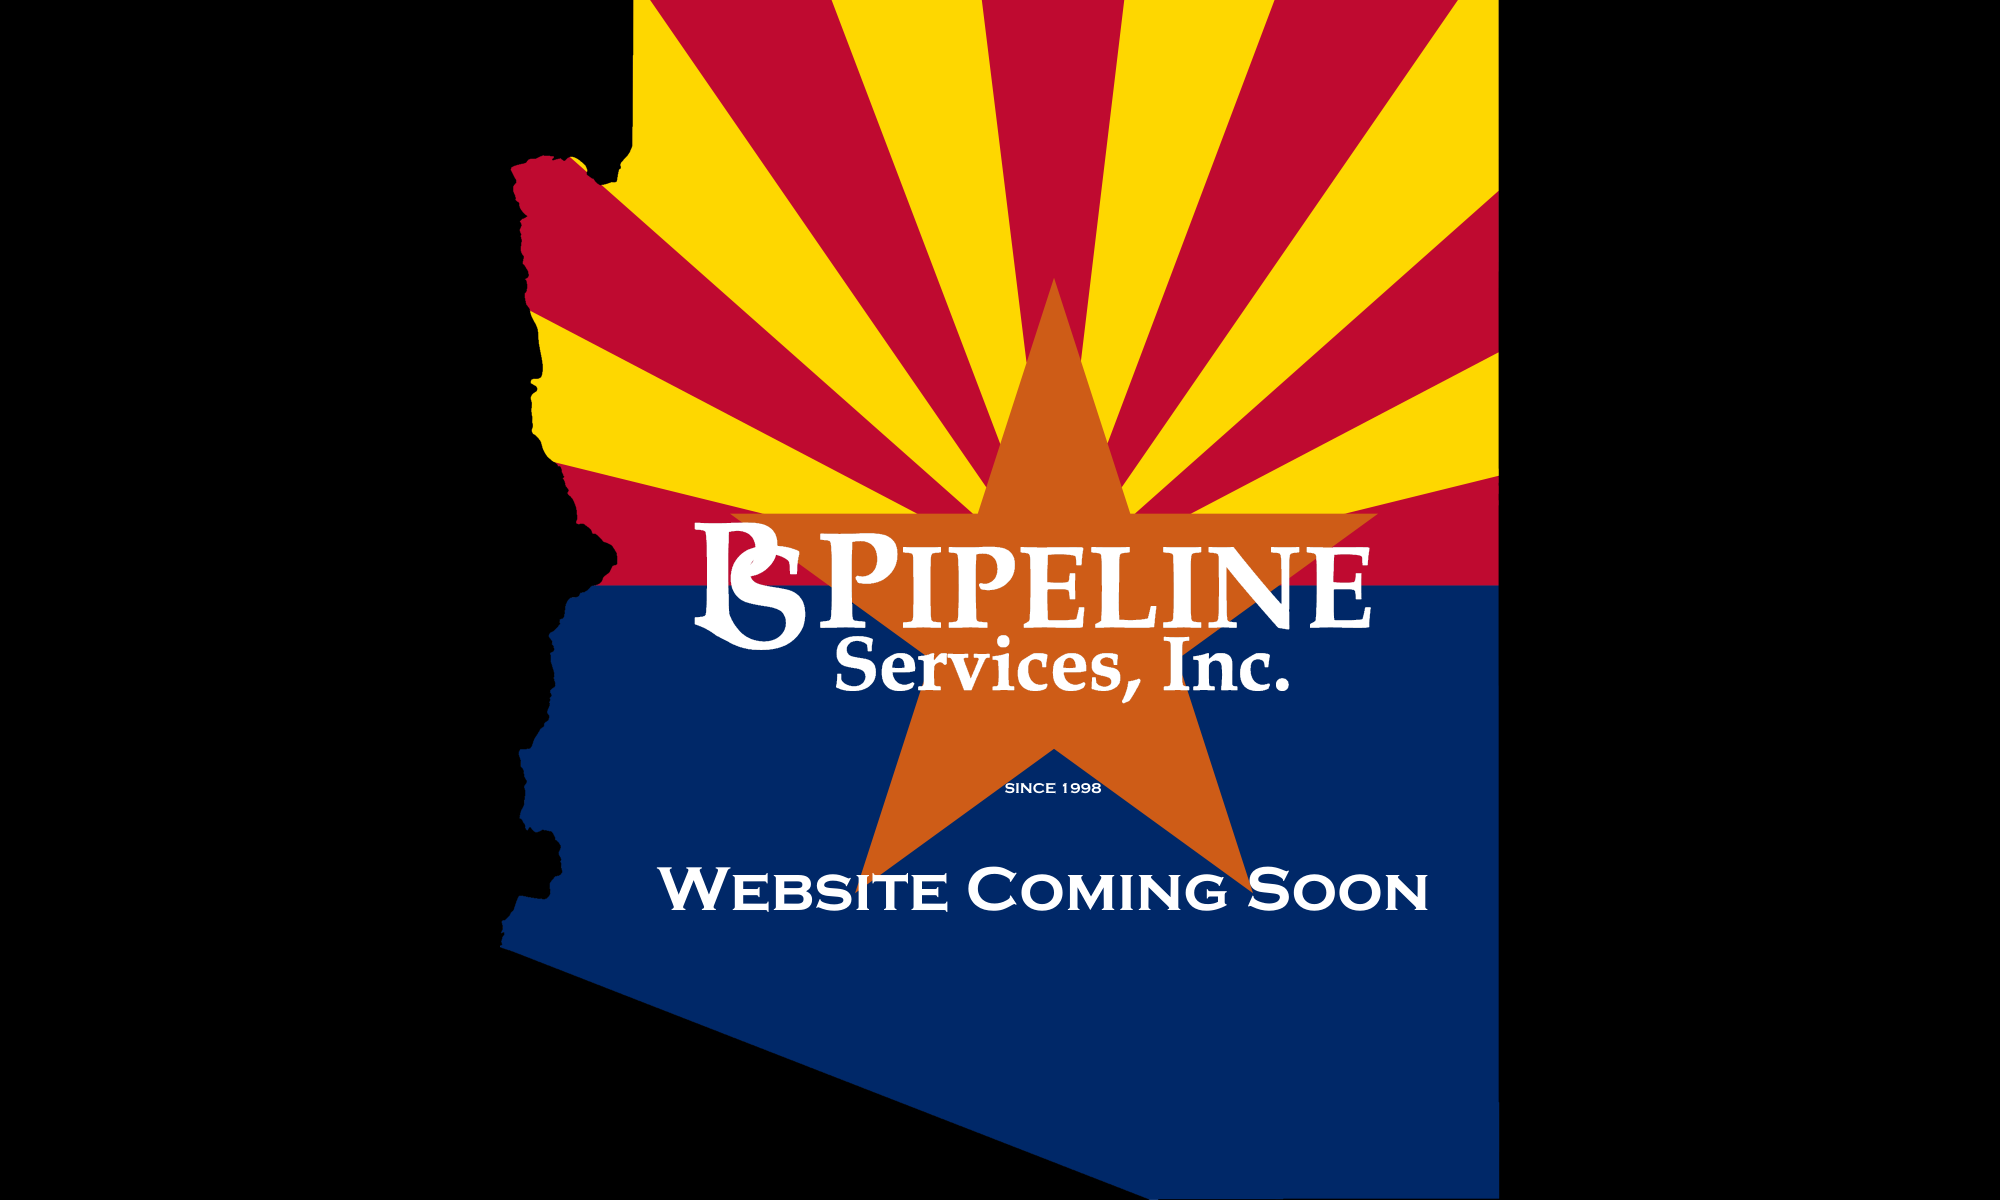 Pipeline Services Inc